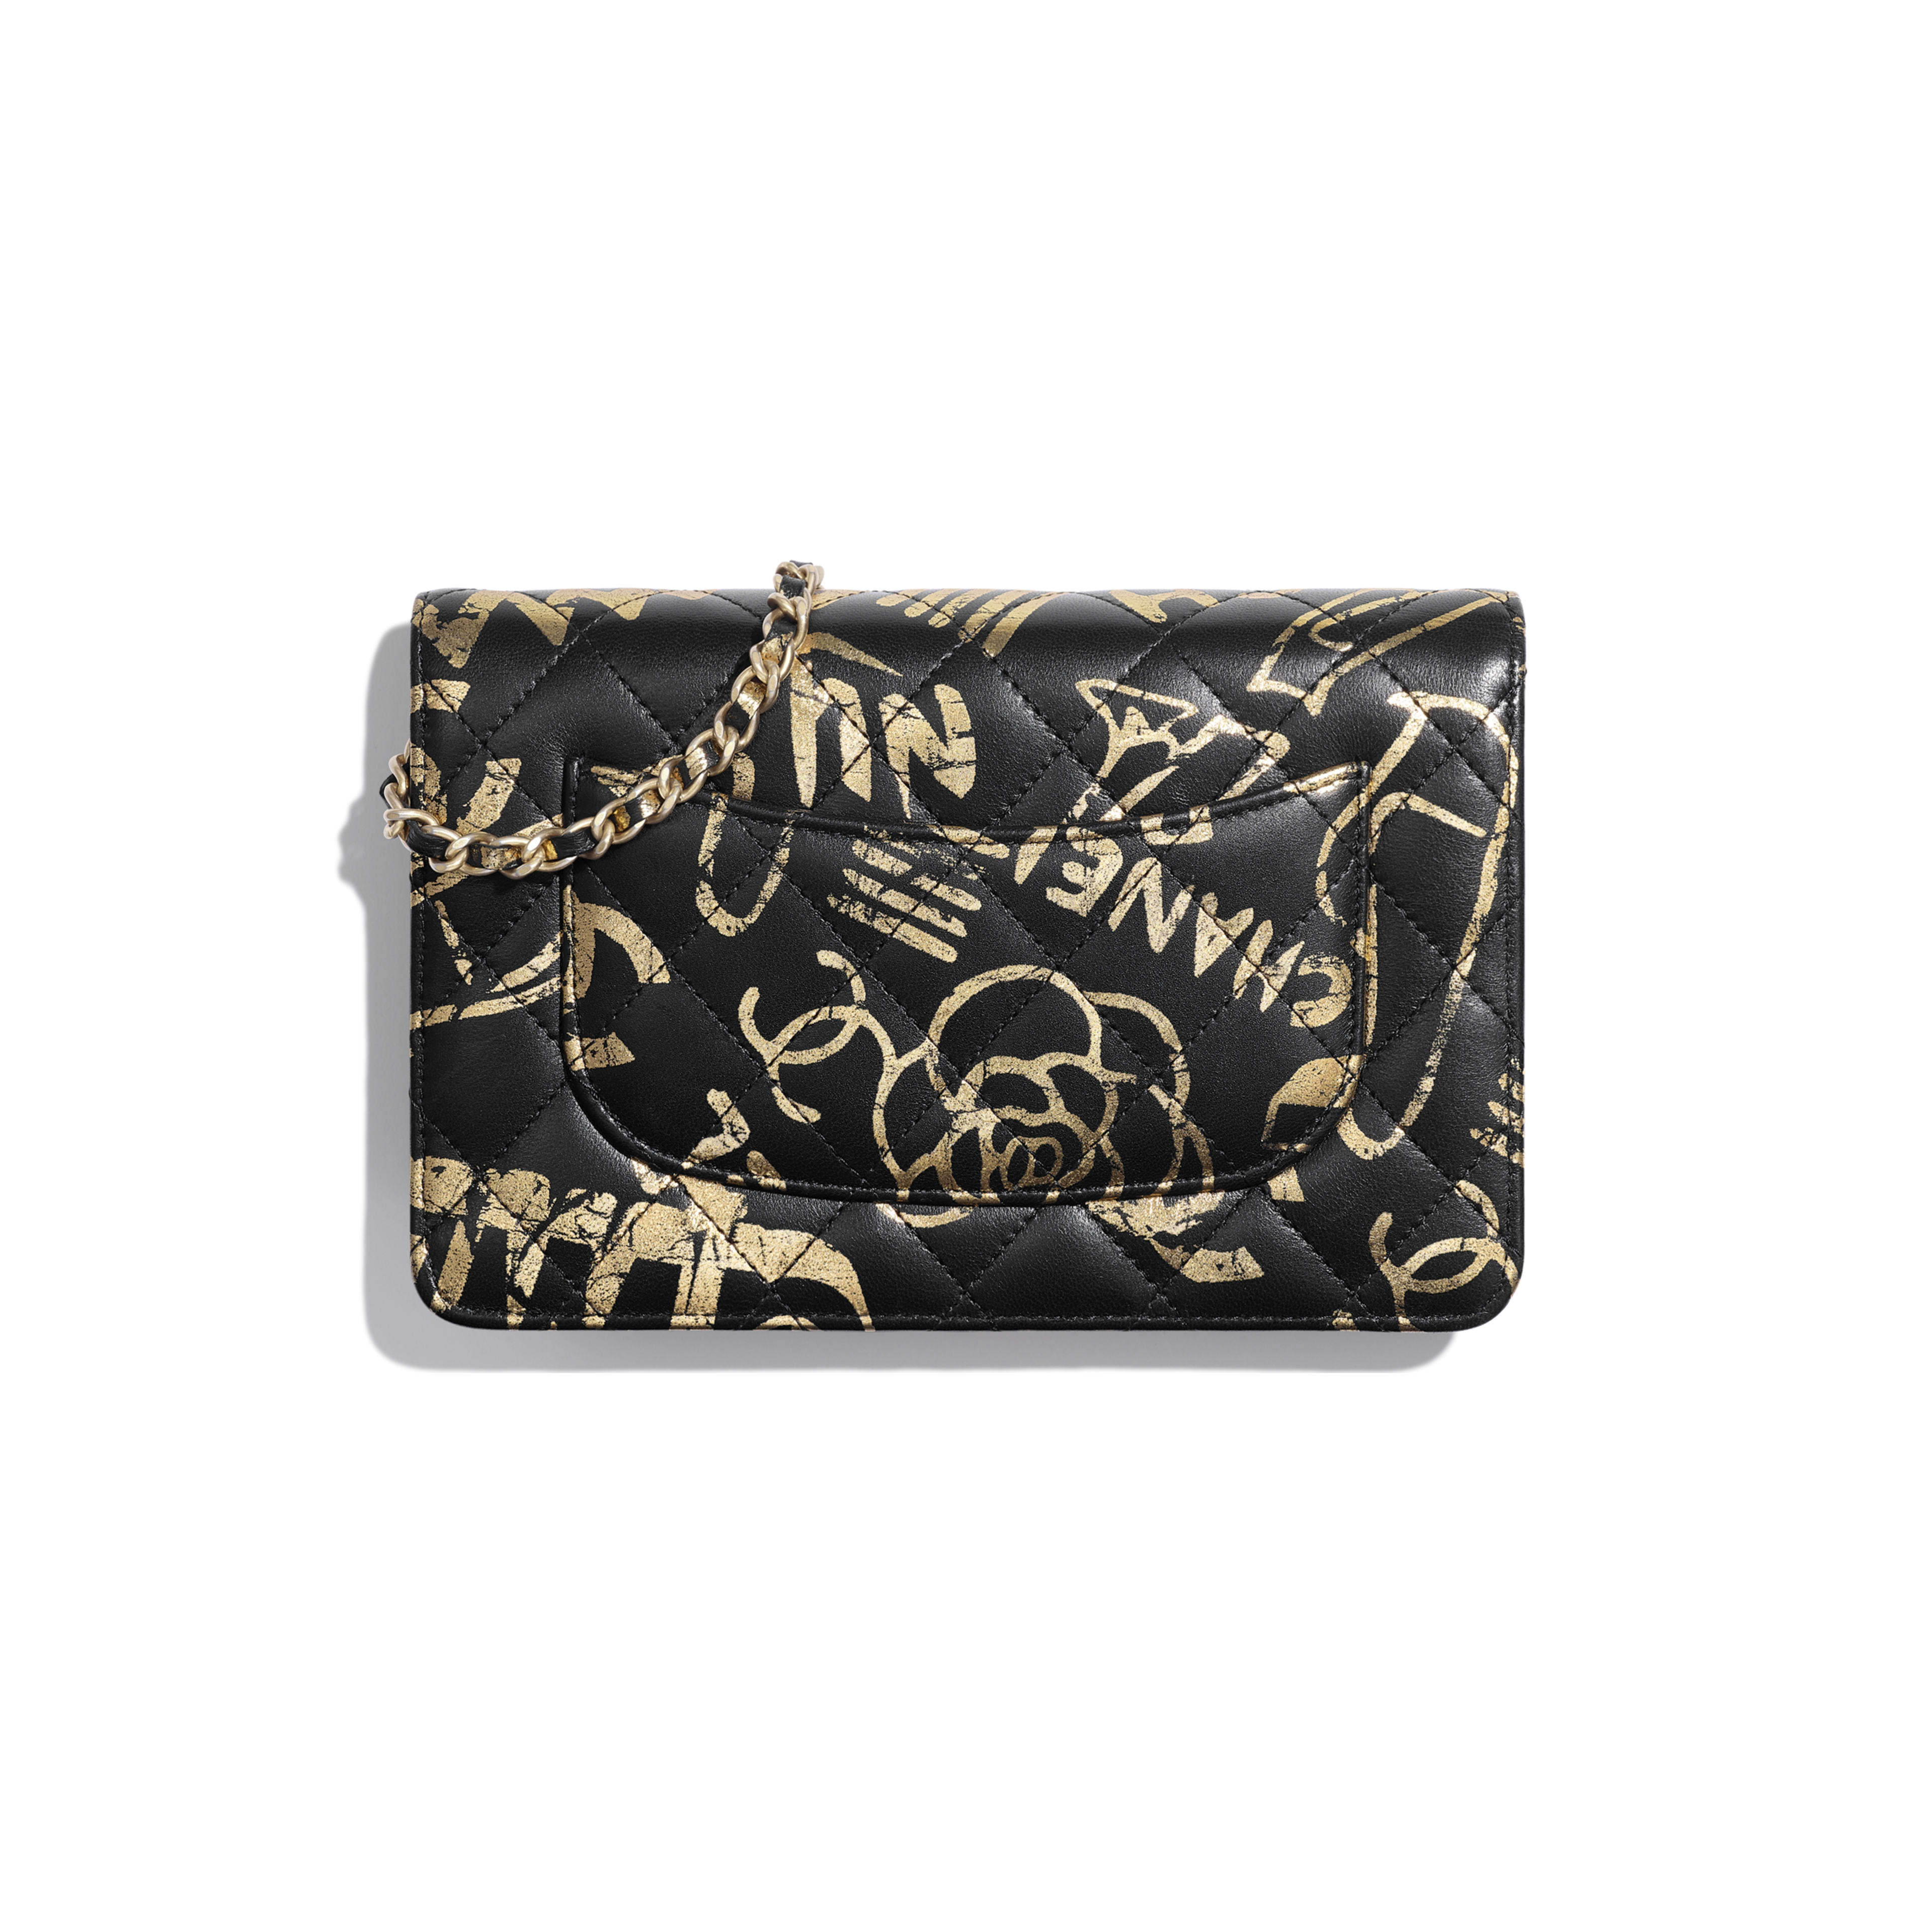 Wallet on Chain - Black & Gold - Printed Calfskin & Gold-Tone Metal - Alternative view - see full sized version